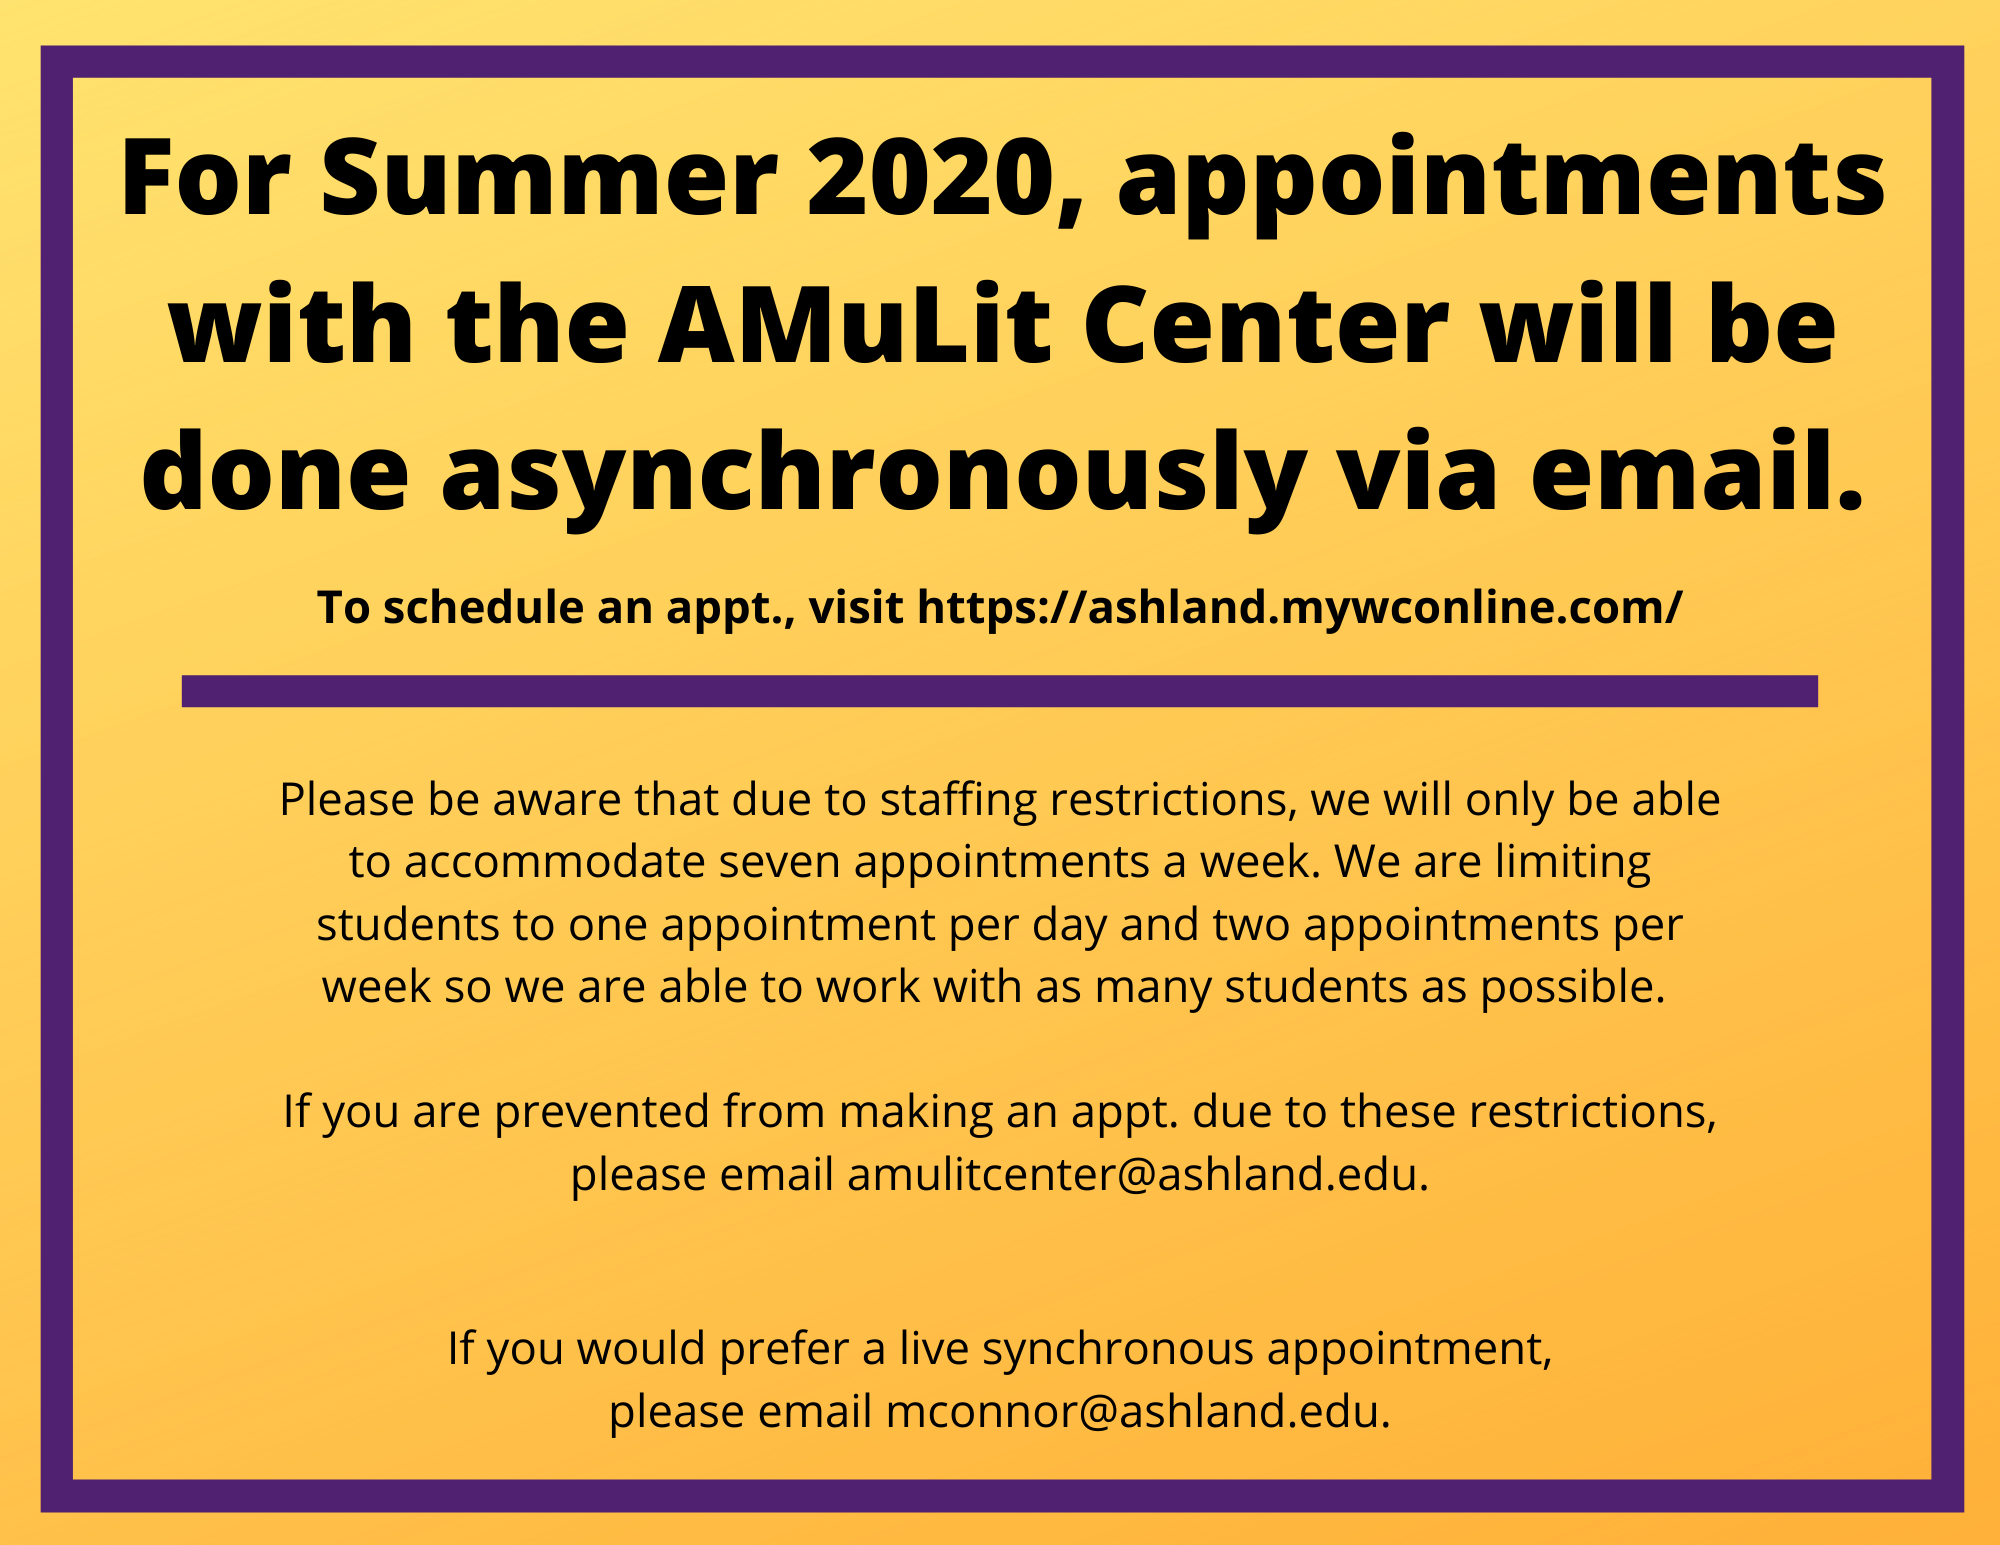 For Summer 2020, appointments with the AMuLit Center will be done asynchronously via email.